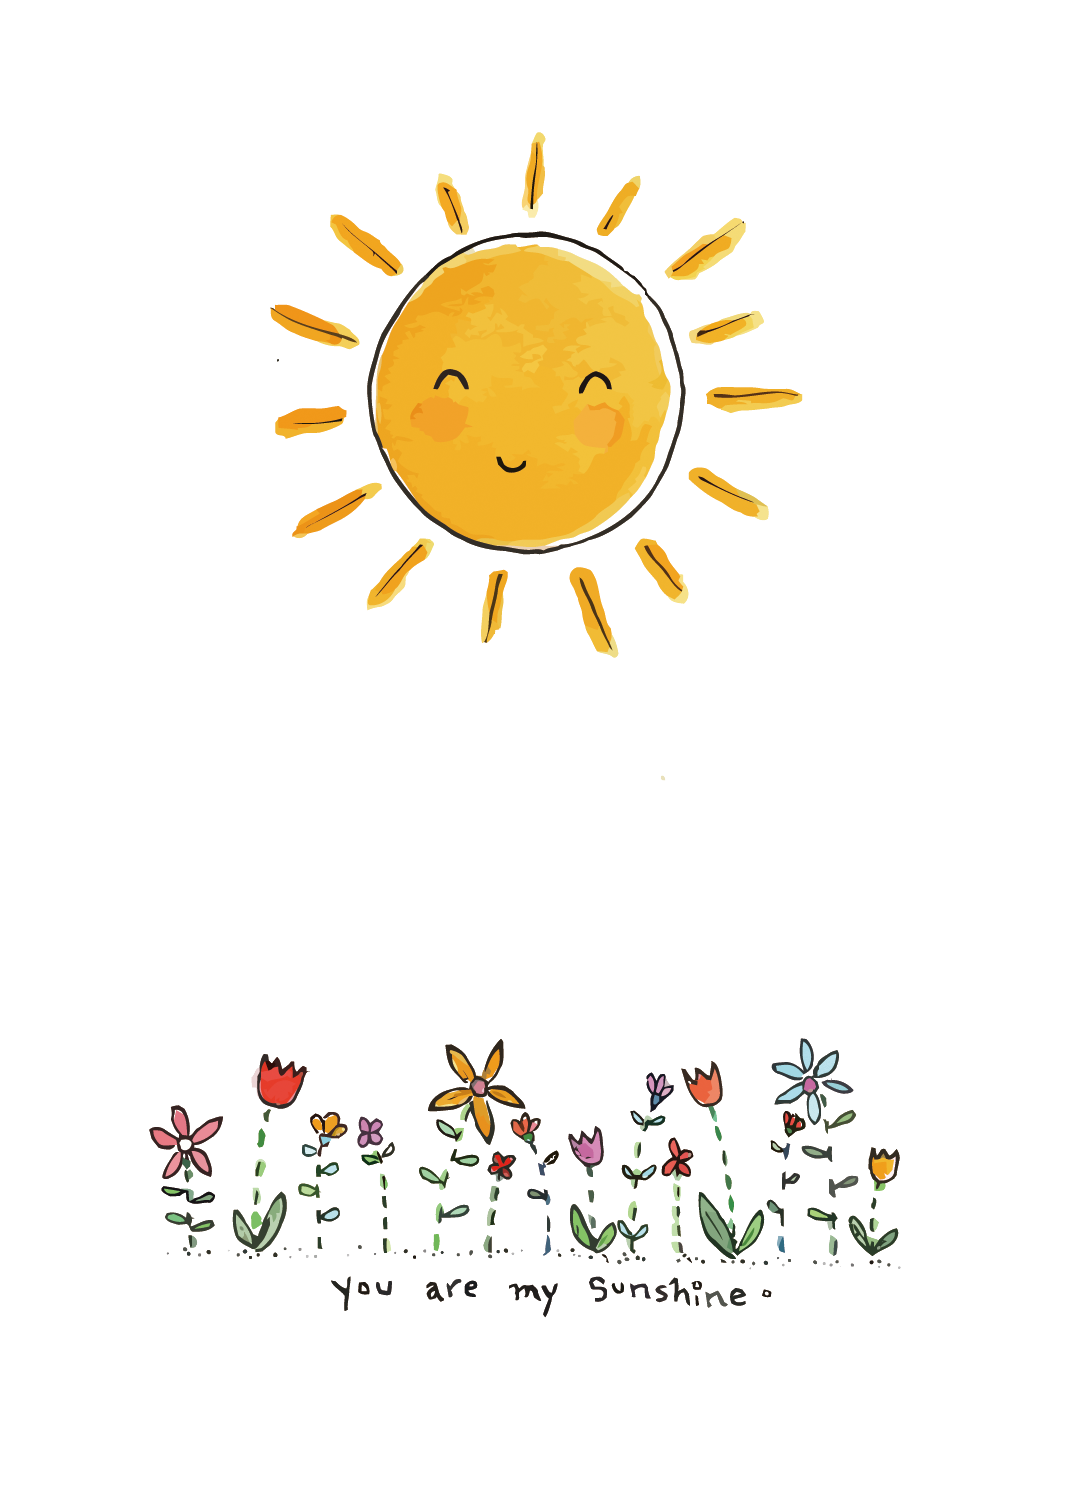 Clipart sunshine watercolor. Drawing art painting illustration